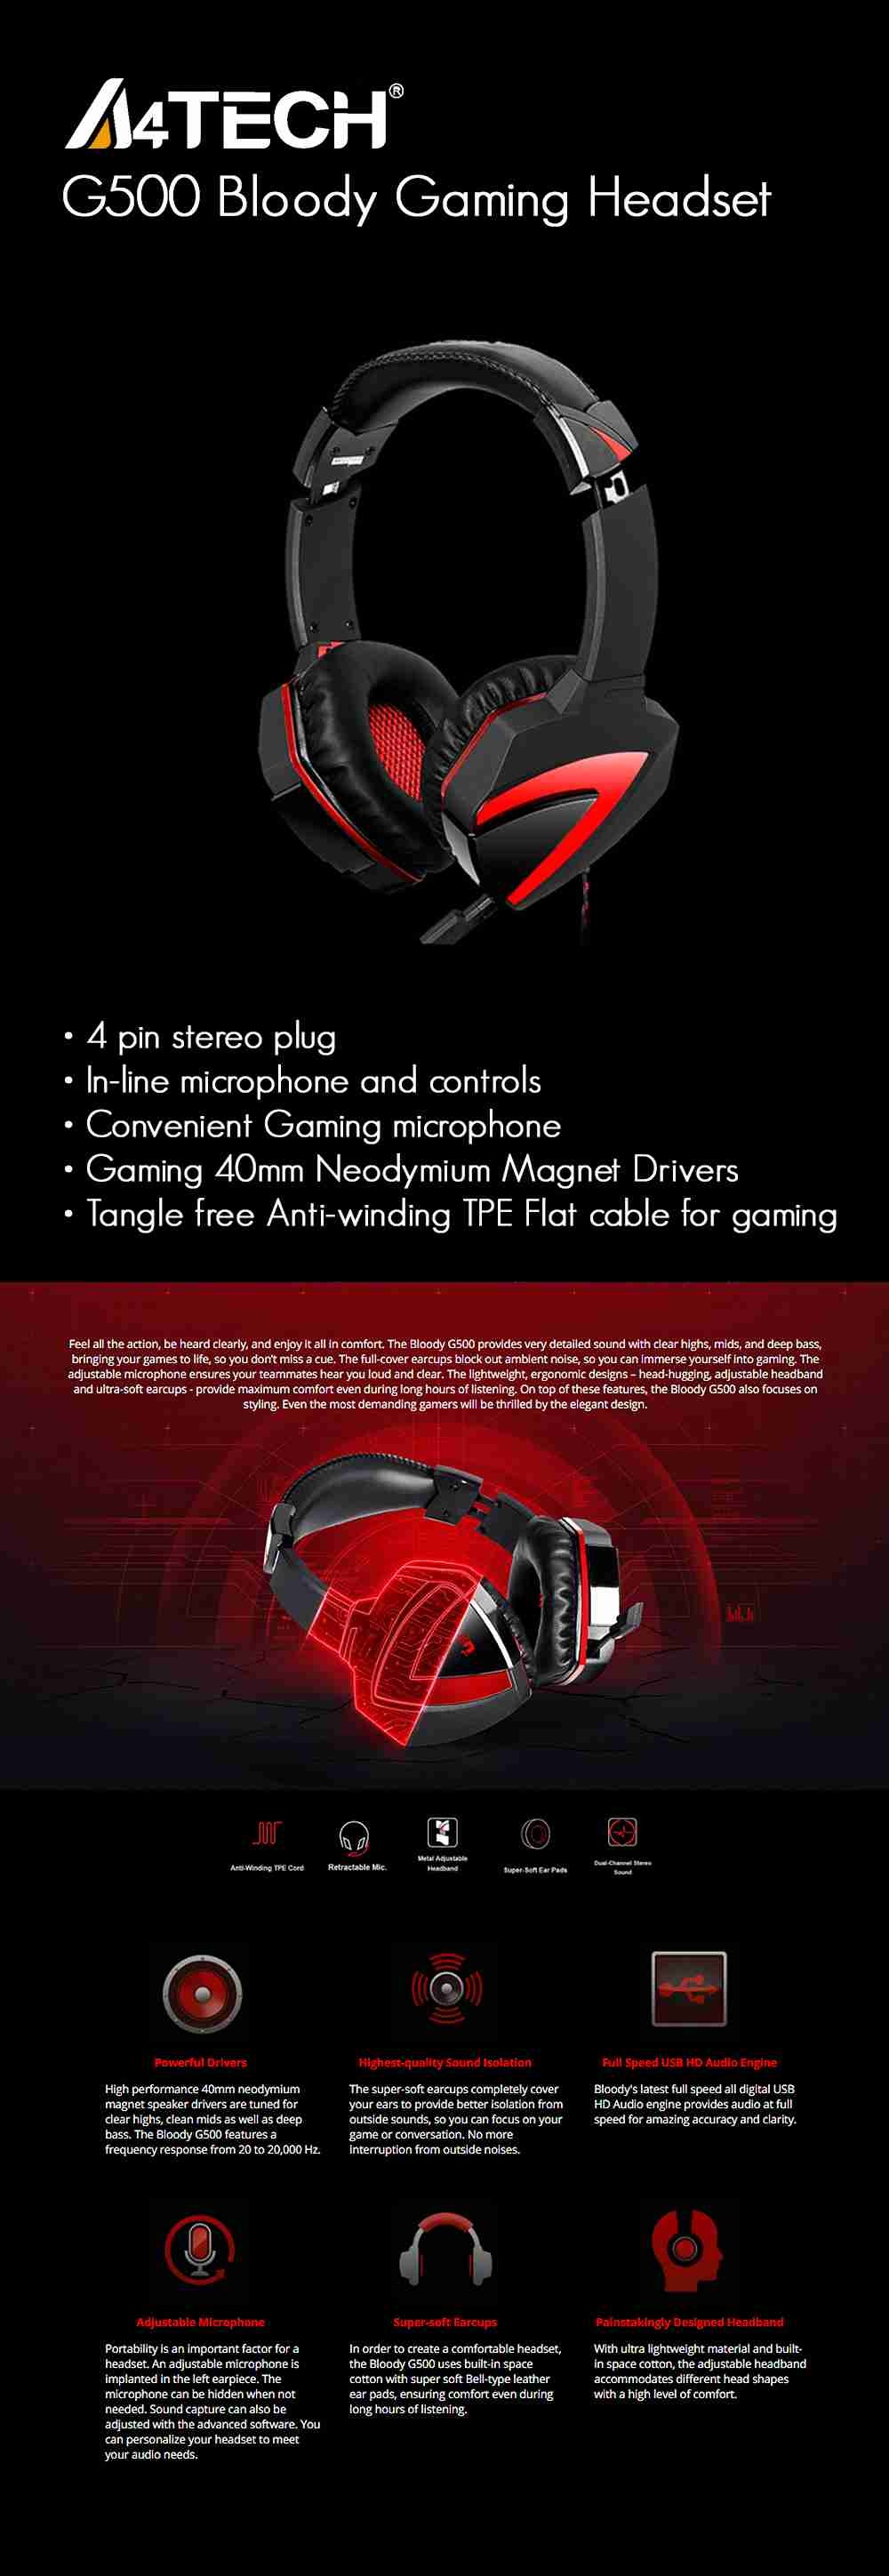 Specifications A4tech G500 Bloody Gaming Headset